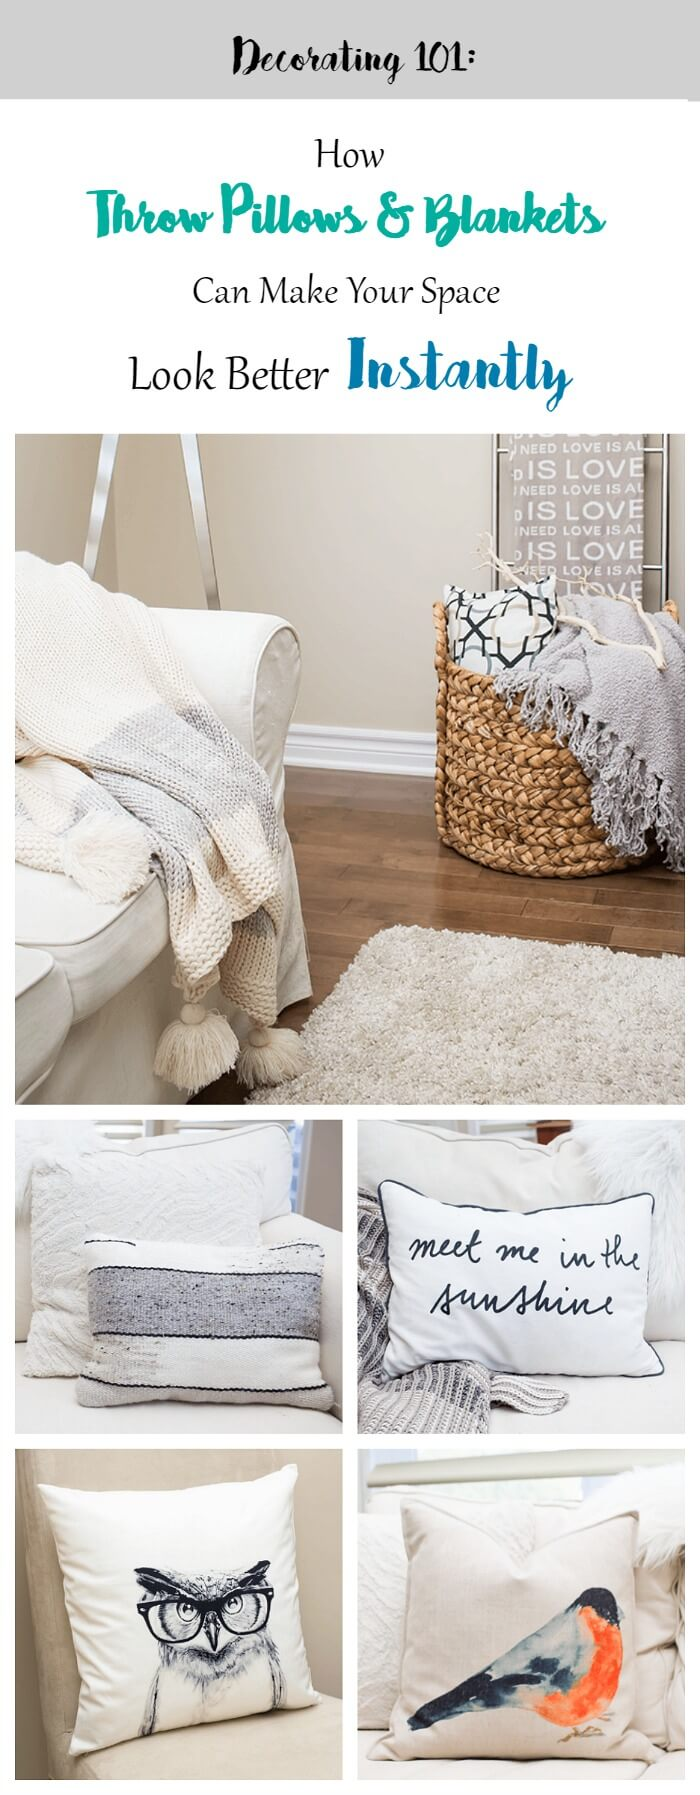 Throw pillows and blankets are a simple, affordable way to add instant appeal to any space. Don't underestimate the power of these 'twin towers' in home decor to take a drab room and make it look stunning in an instant. Get your inspiration (along with a key formula in design) in this decorating series via aprettyfix.com.